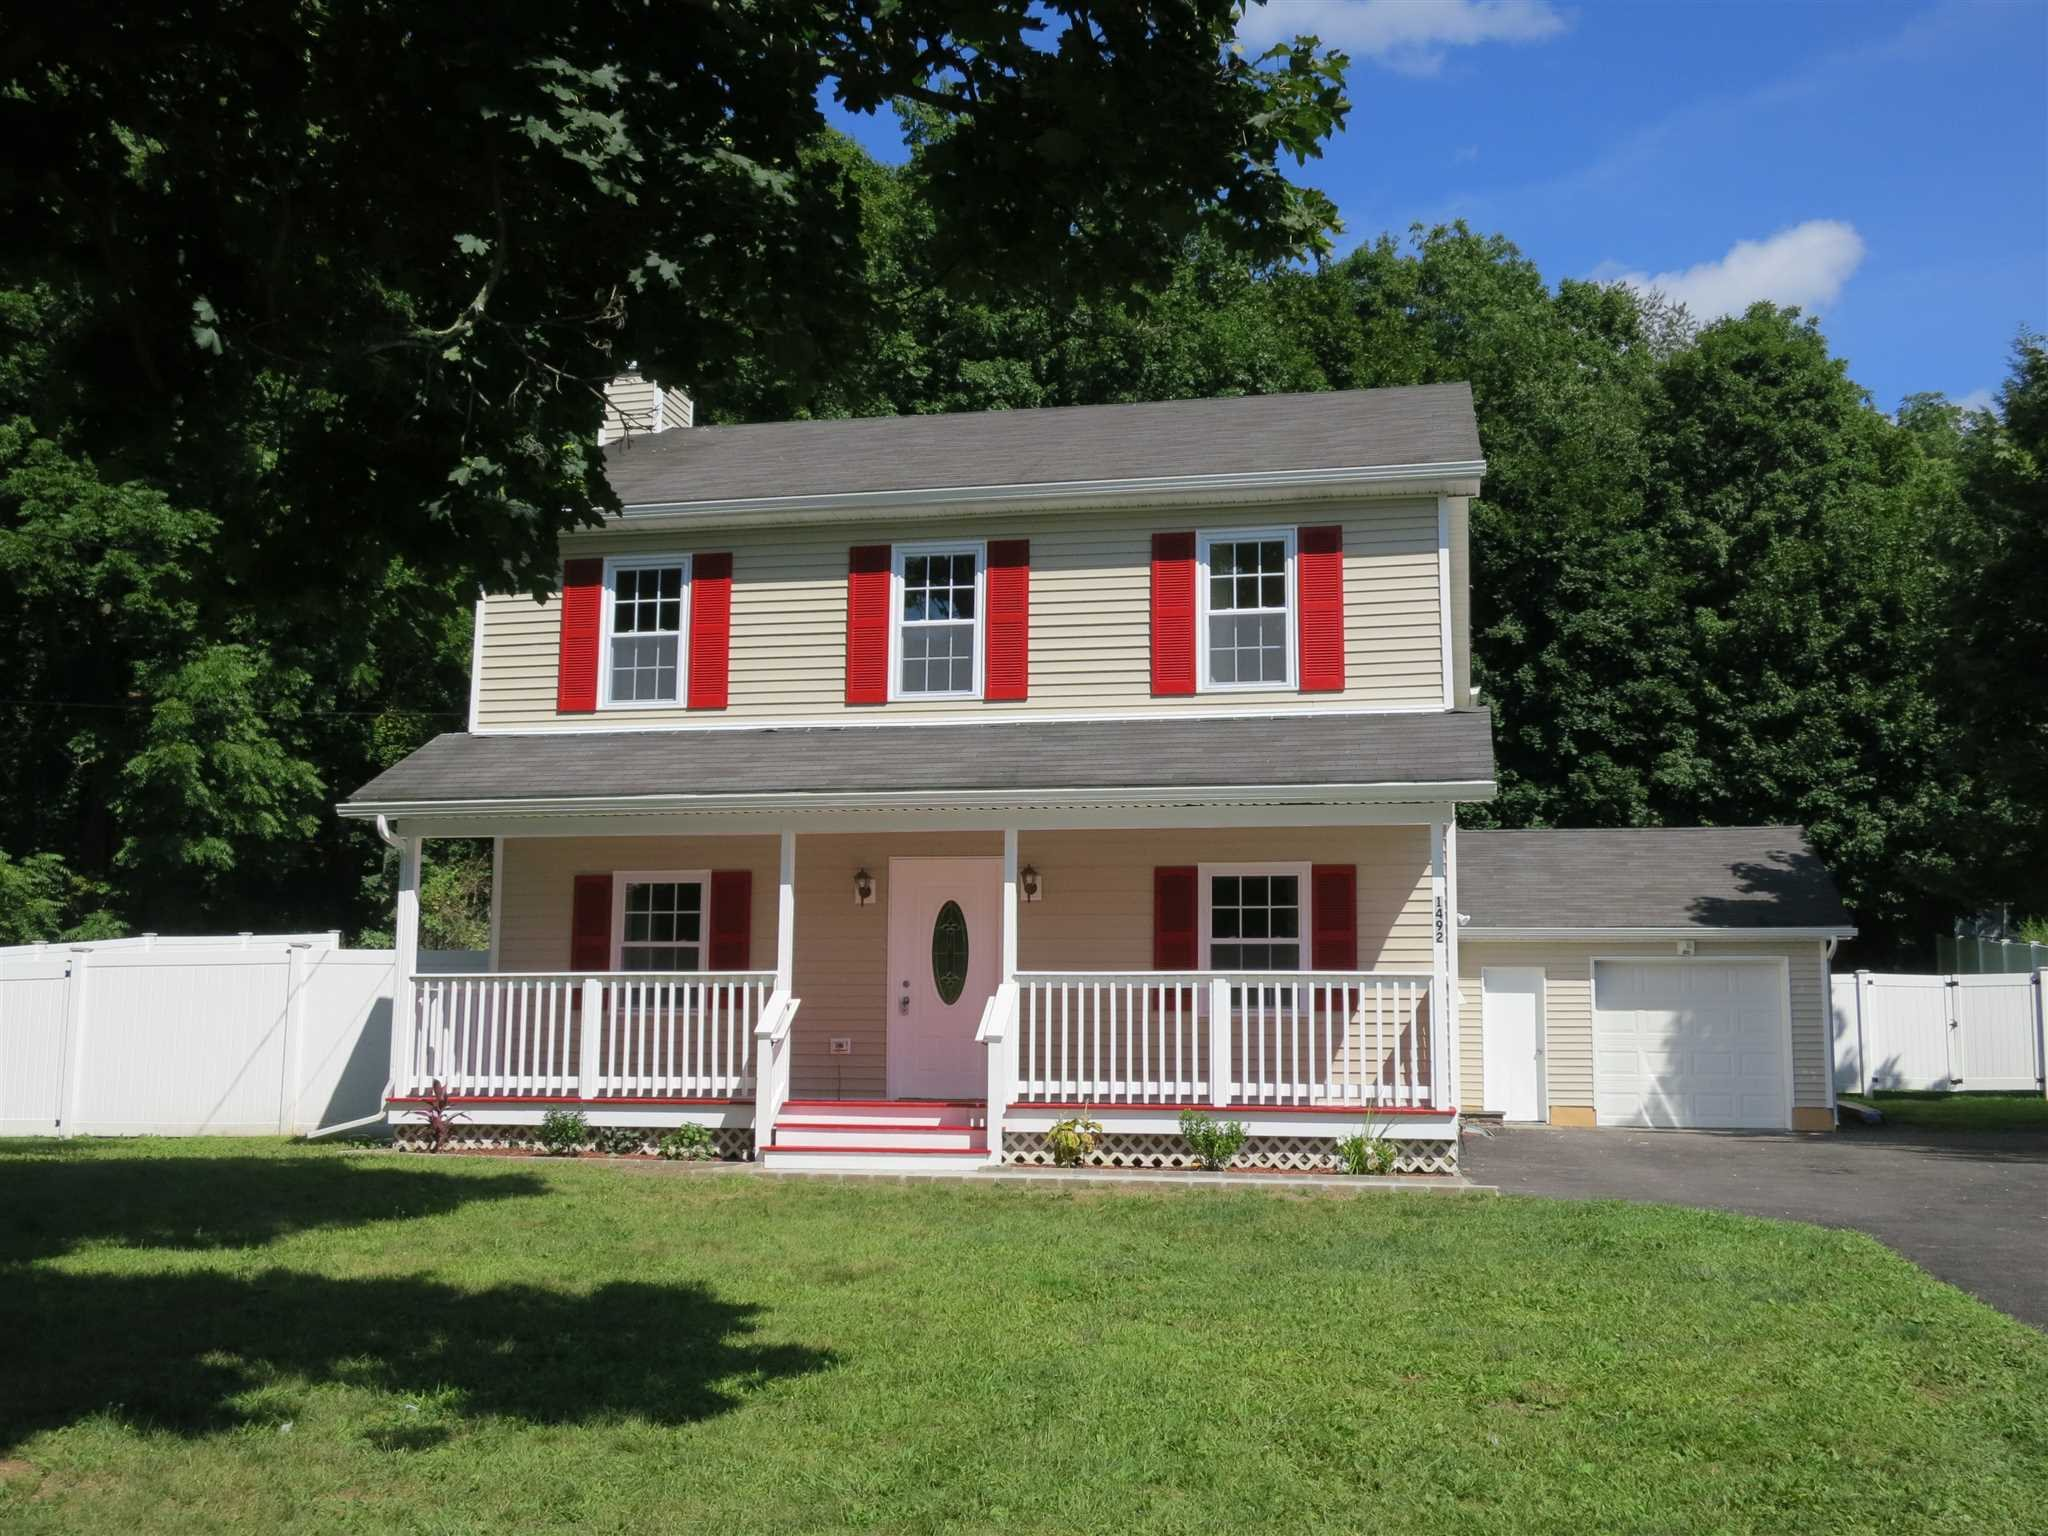 Single Family Home for Sale at 1492 ROUTE 82 1492 ROUTE 82 East Fishkill, New York 12533 United States